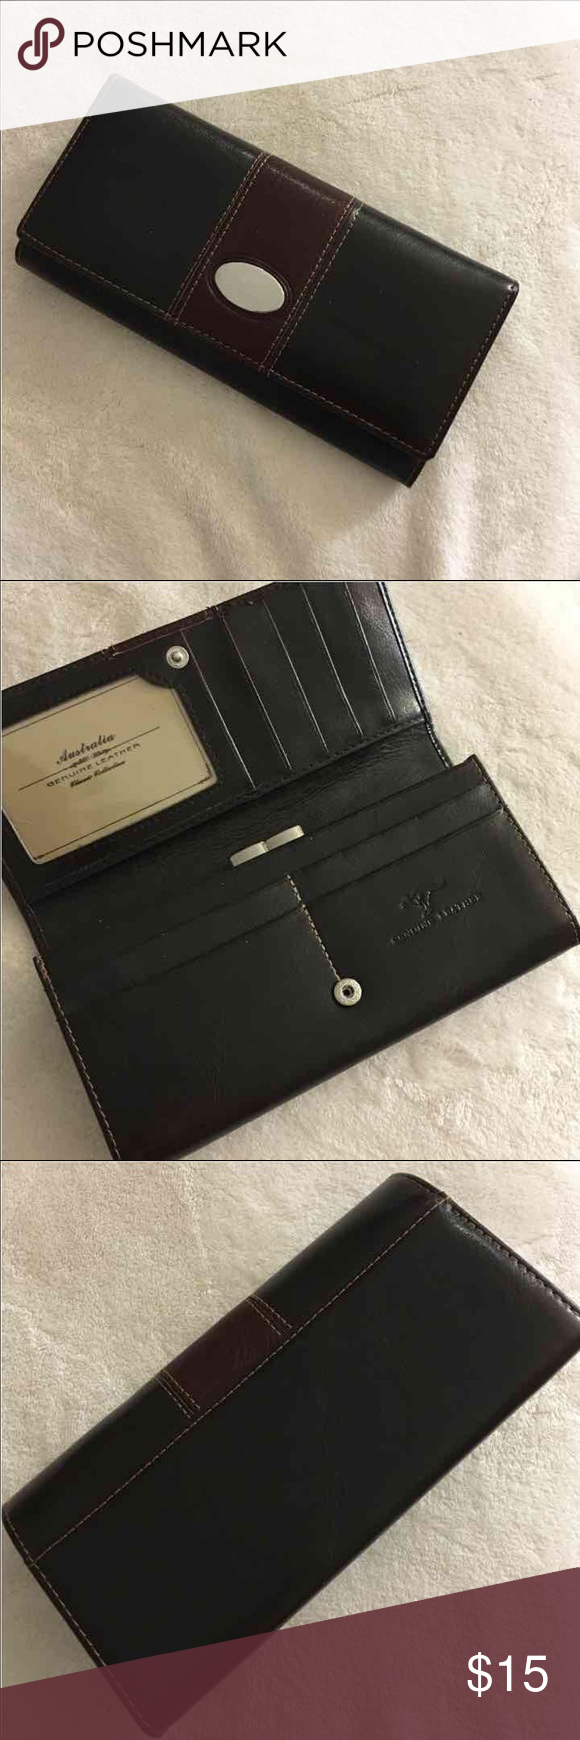 Kangaroo Wallet - Australia Brand new with box / Geniune Leather Bags Wallets